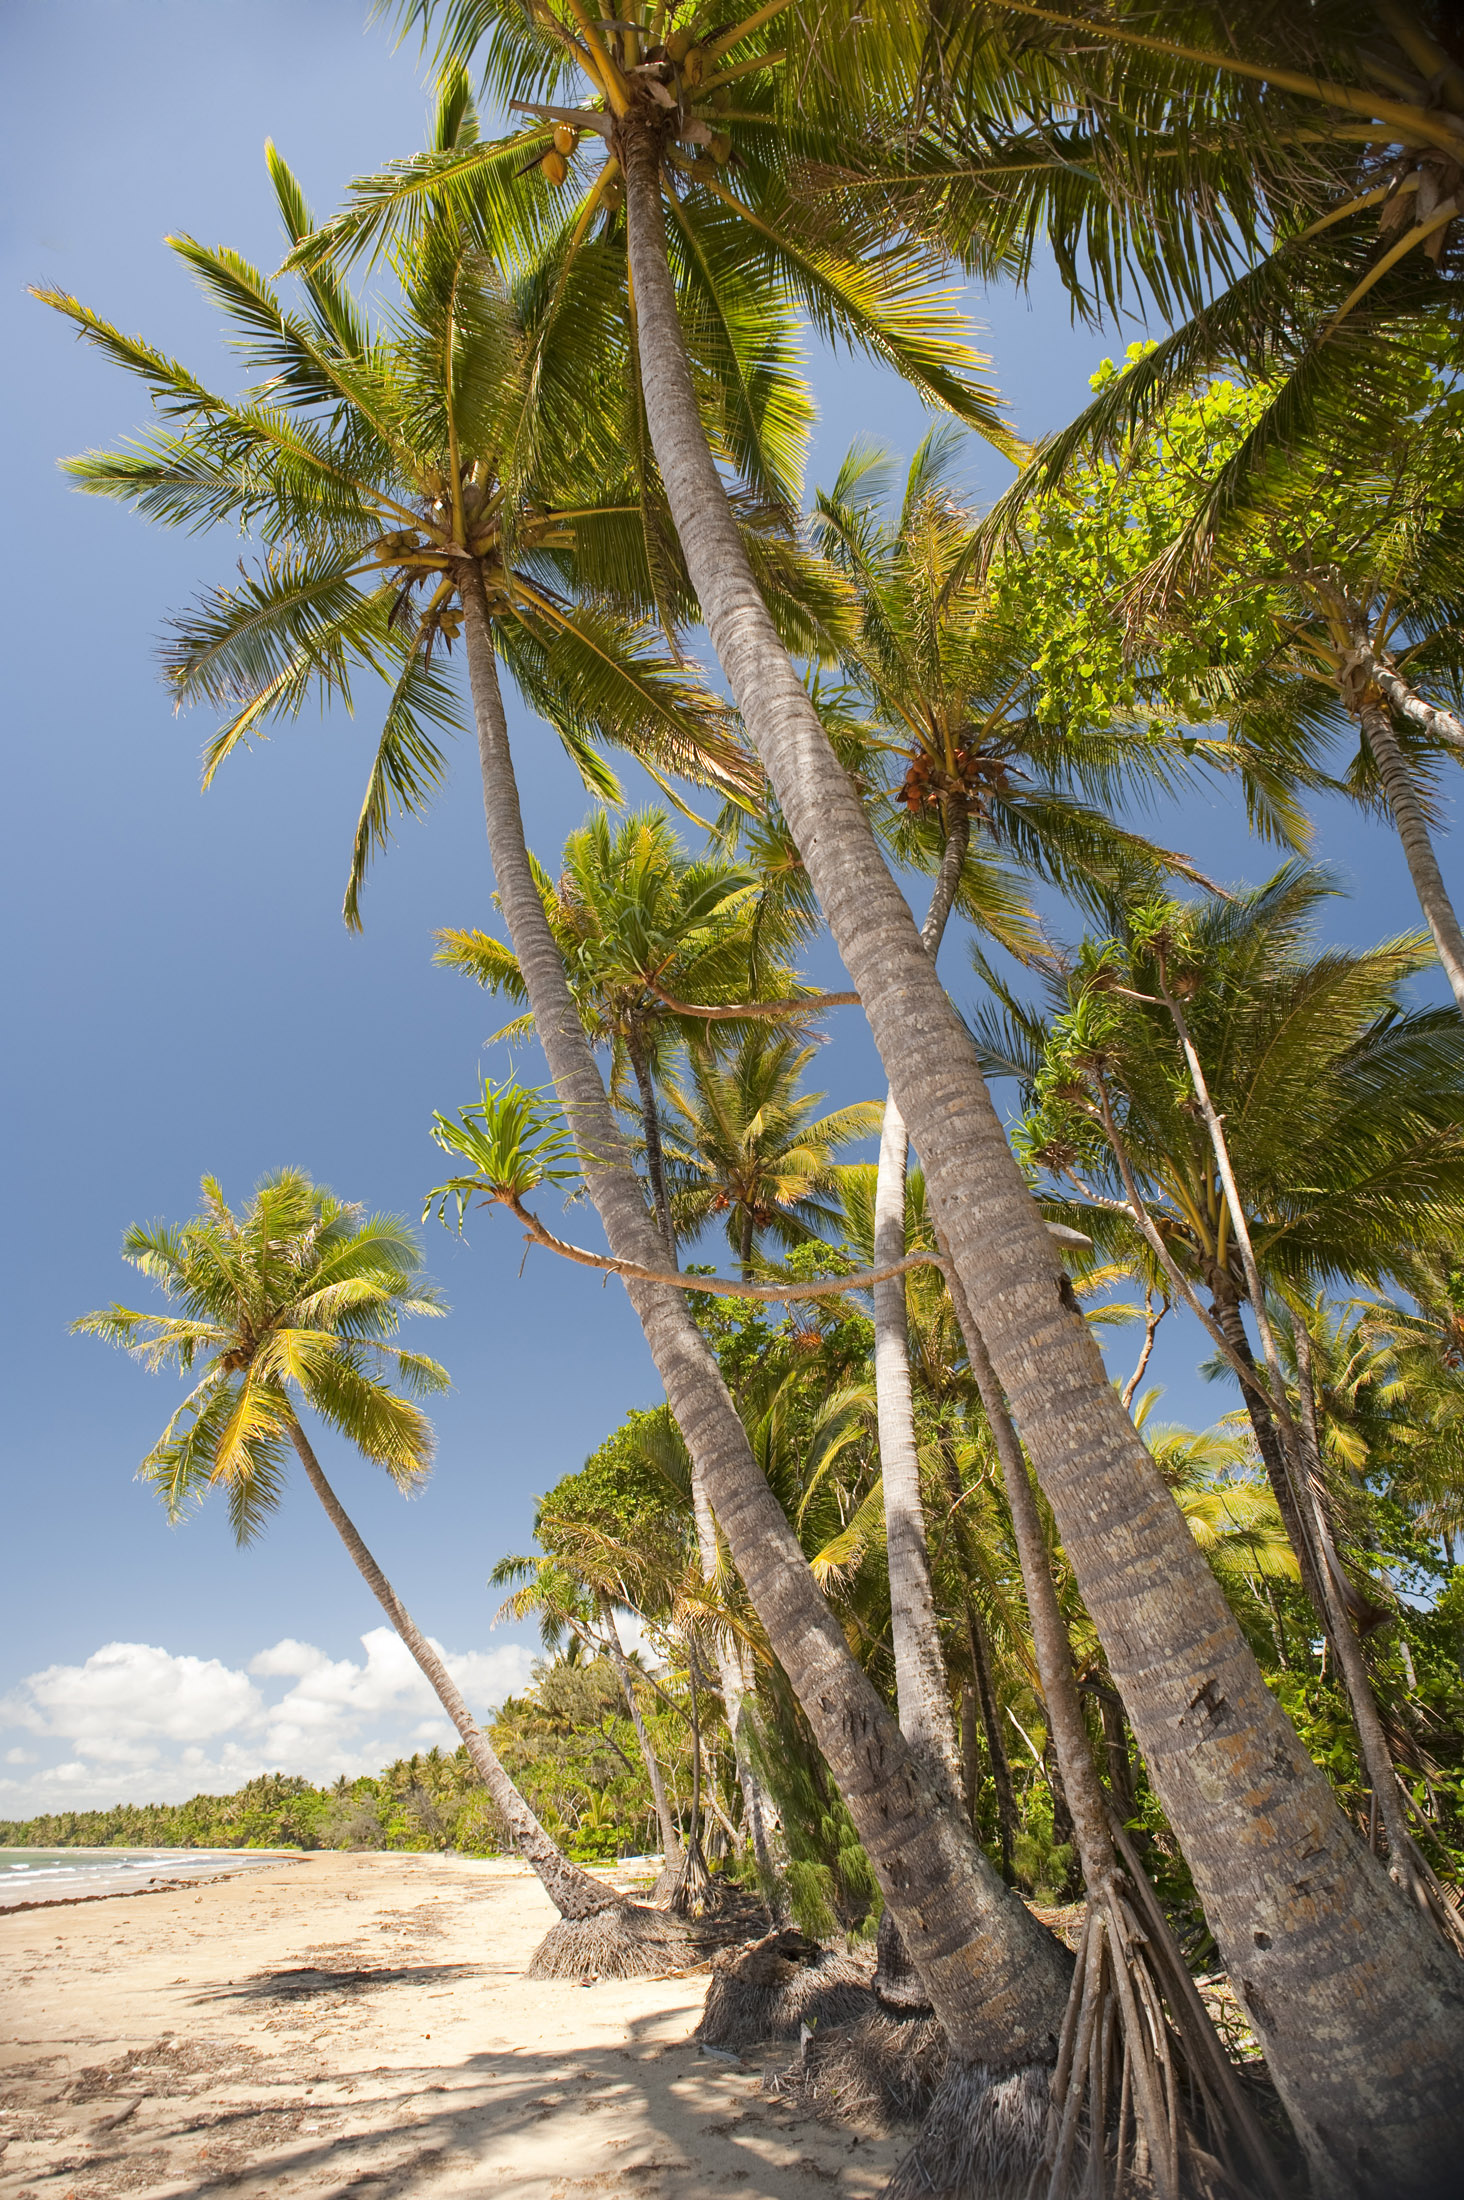 tropical coconut palms fringe a sandy beach